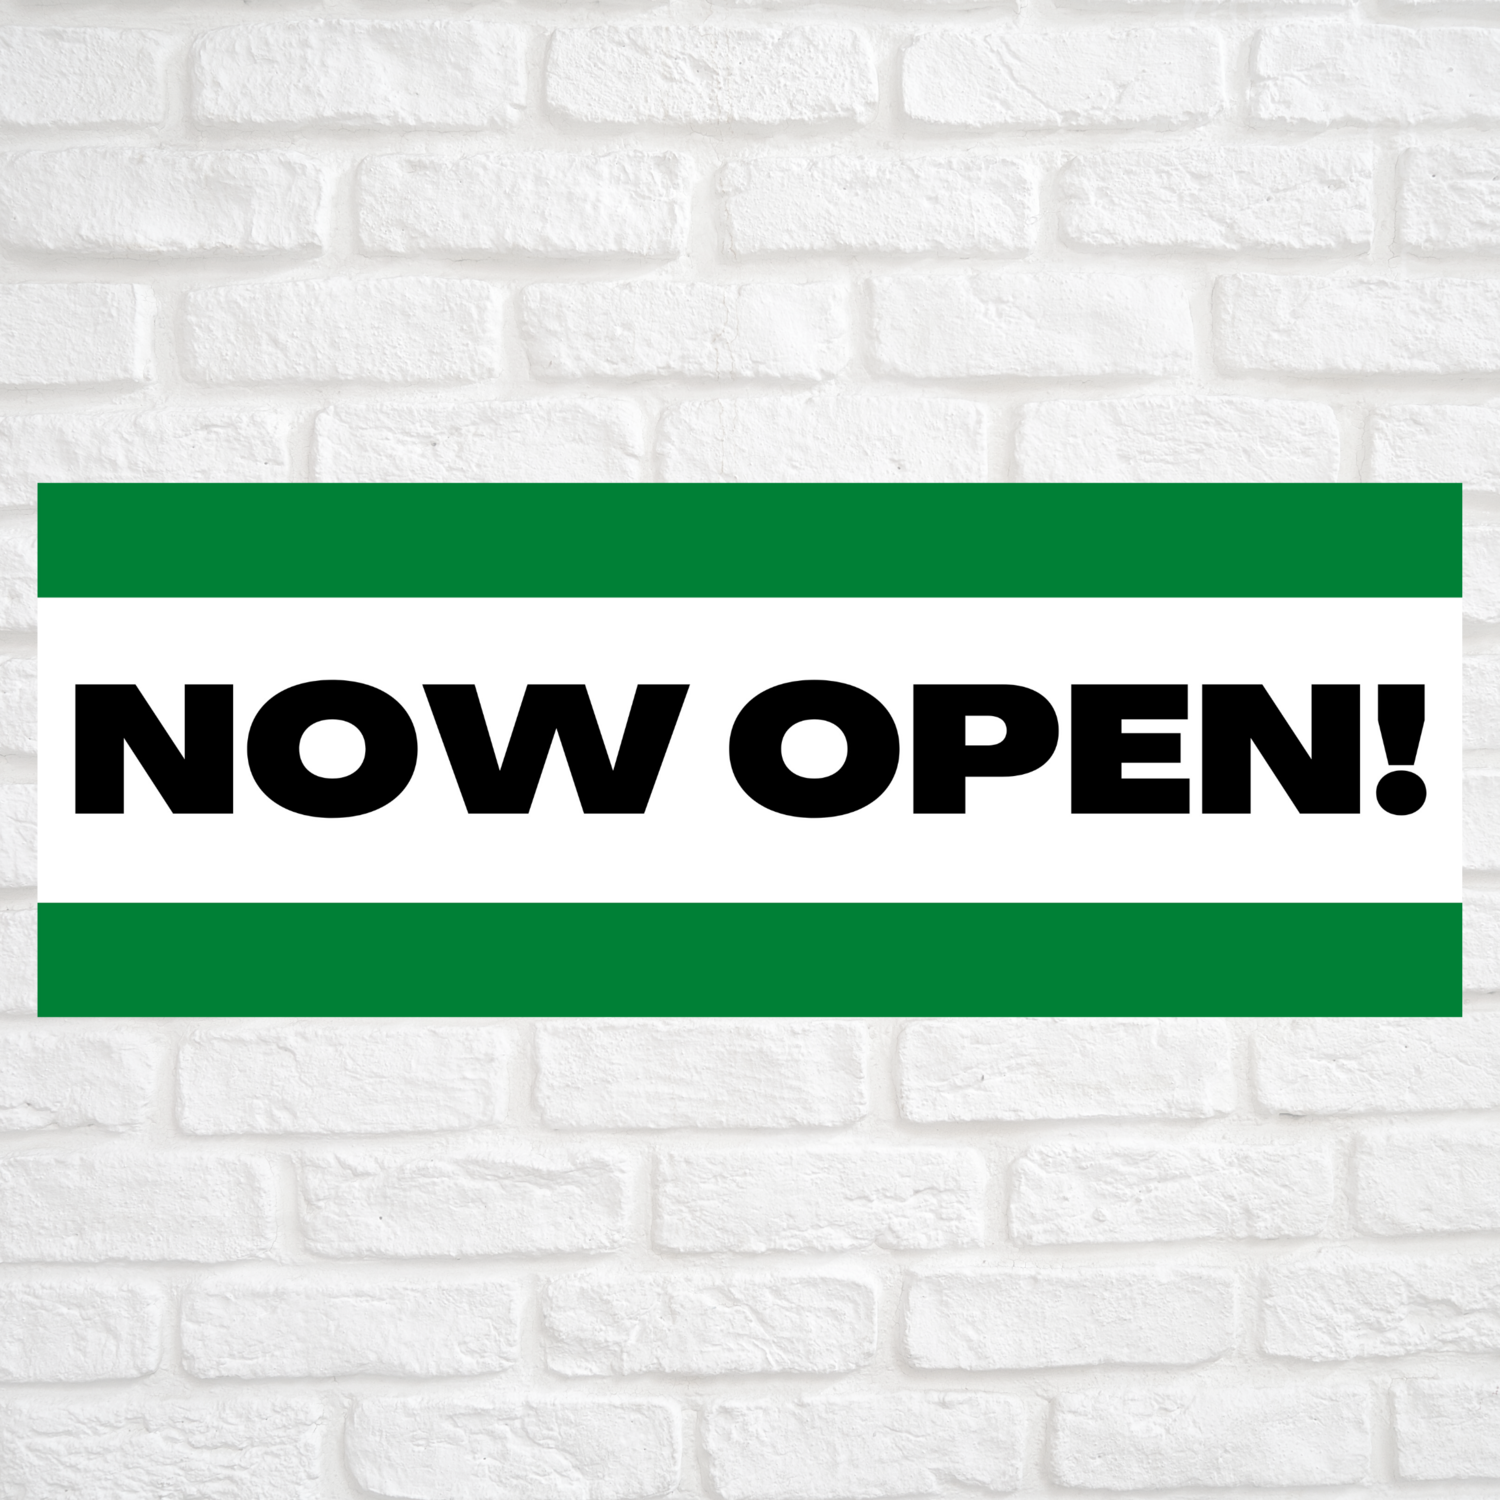 Now Open! Green/Green